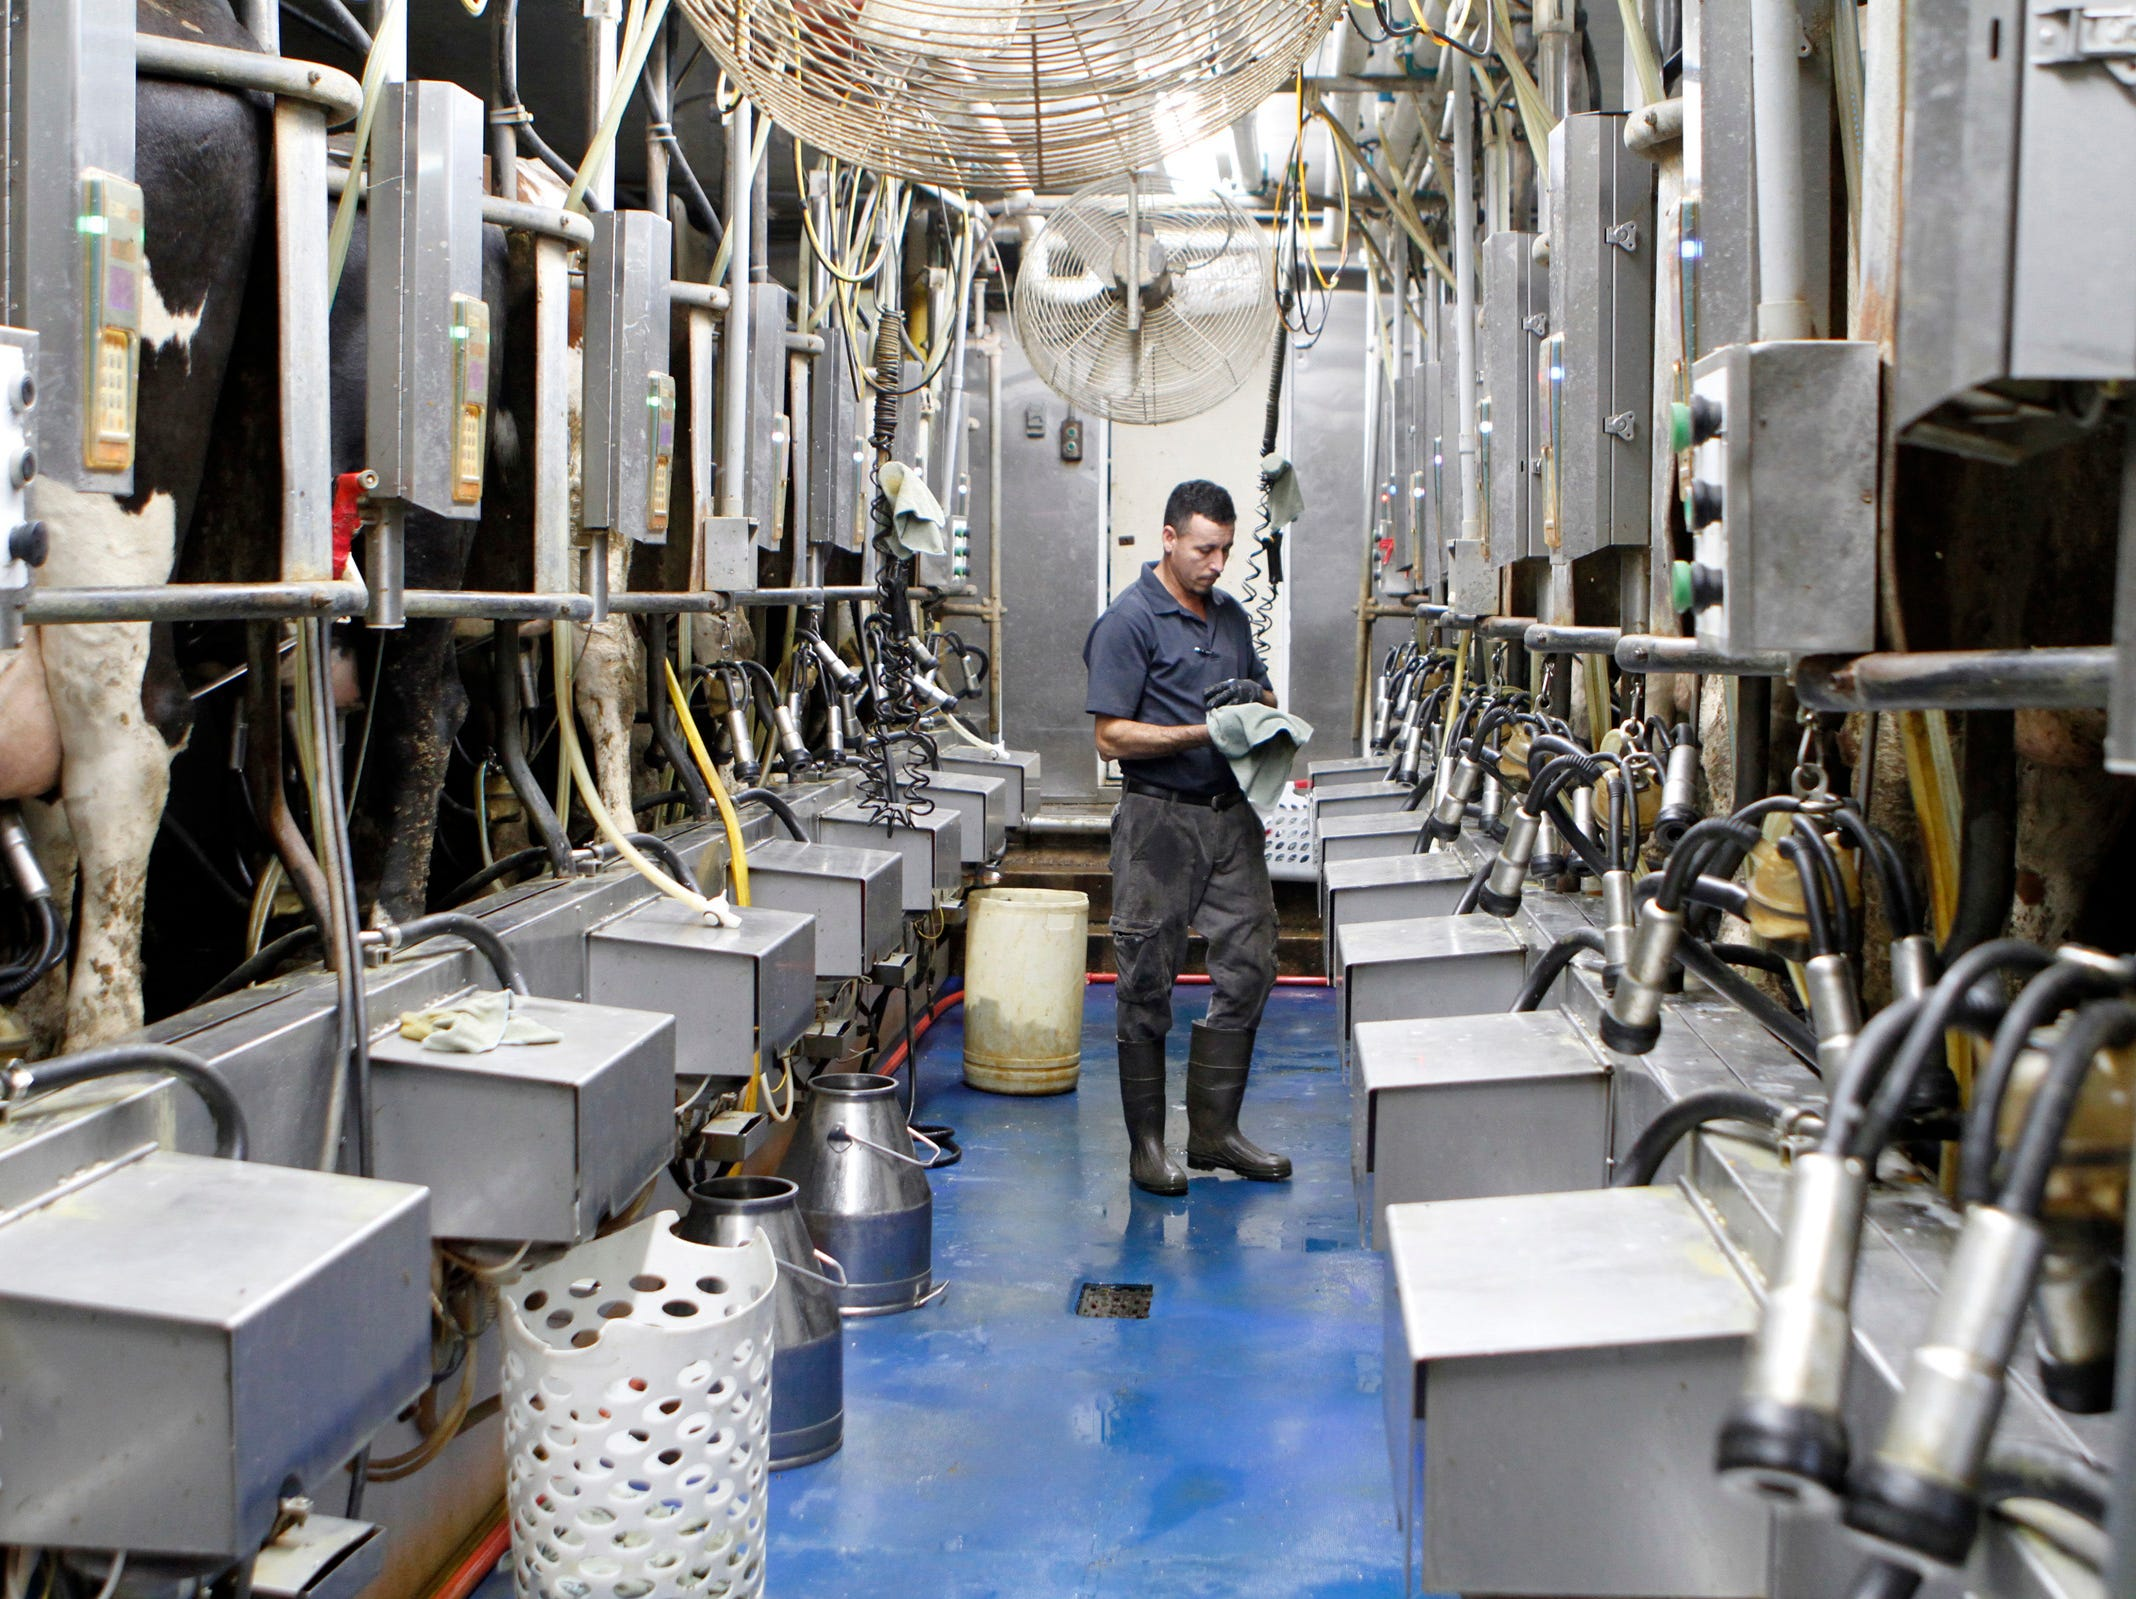 The Roden family dairy farm in West Bend milks 650-700 cows in a double 8 herringbone parlor. The goal was to build a freestall barn and then a new parlor, but low commodity prices have stalled those plans for the time being.